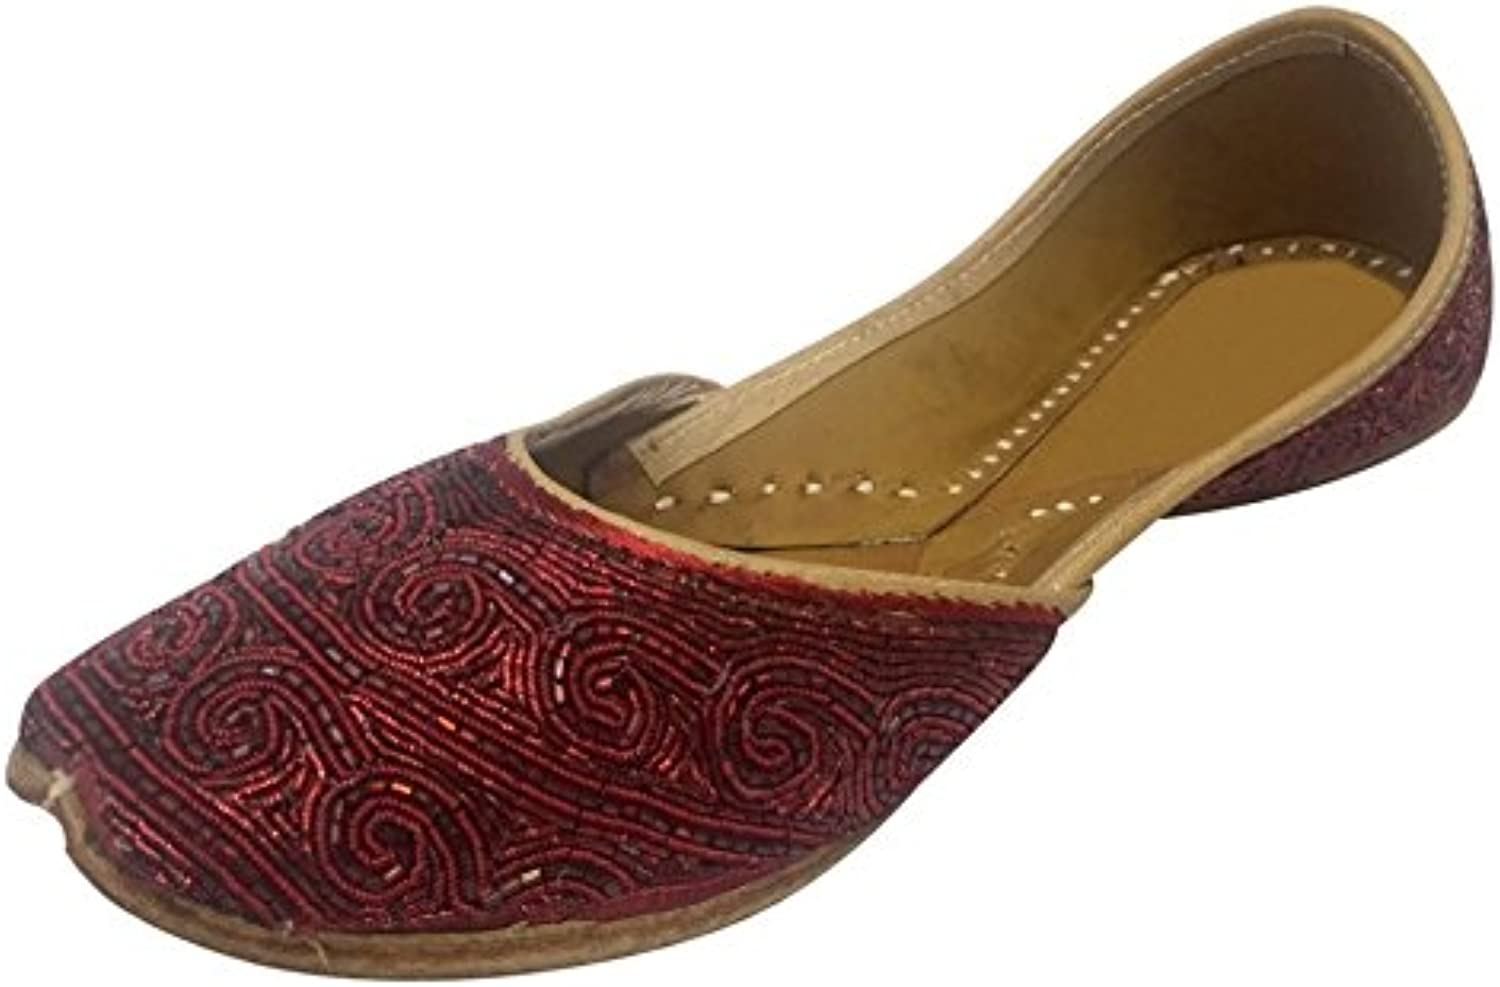 Step n Style Punjabi Jutti shoes Ethnic shoes Beaded Sandals Khussa Wedding Jutti Red